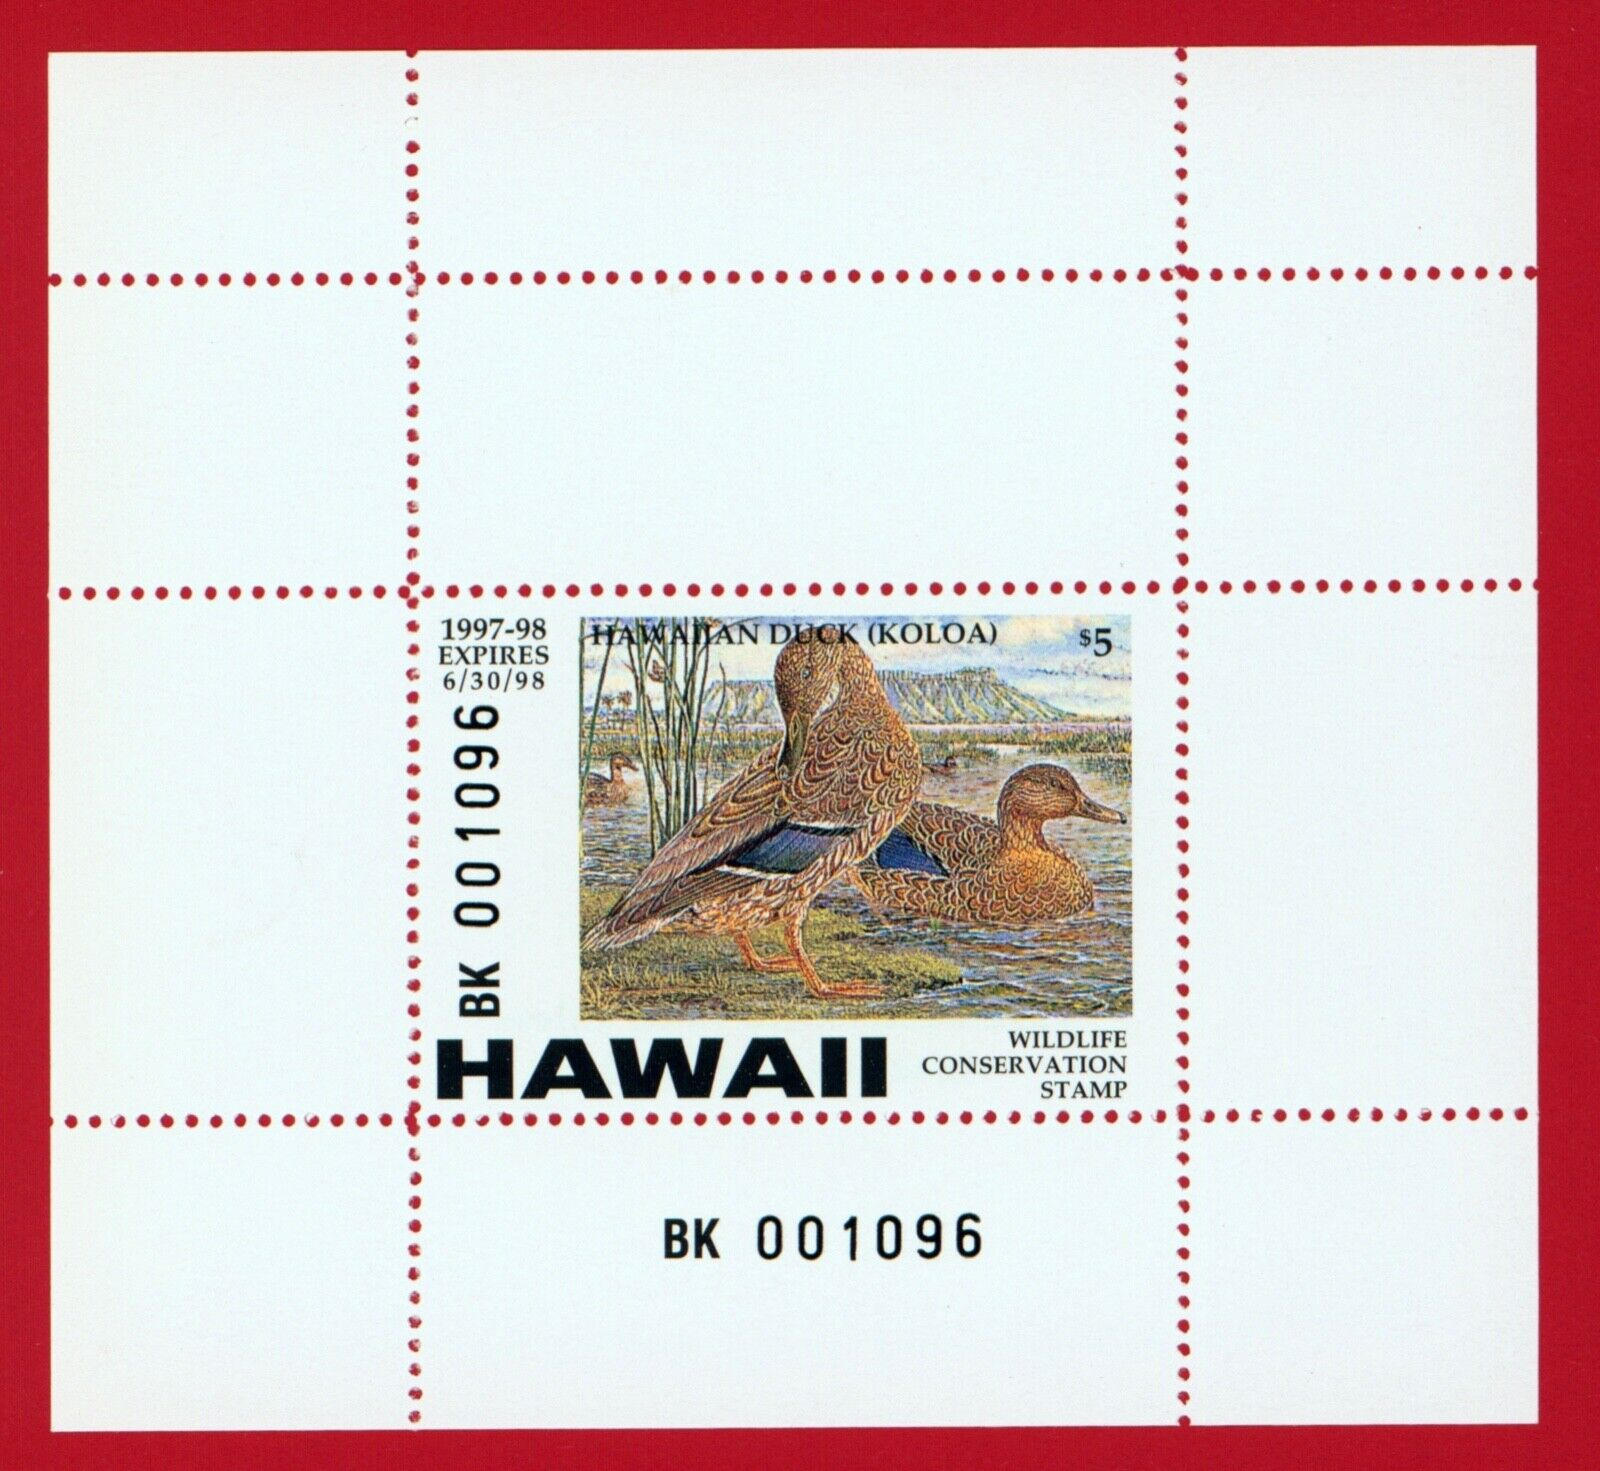 CLEARANCE HI02A 1997 Hawaii Wildlife Conservation Stamp Minisheet - $4.00